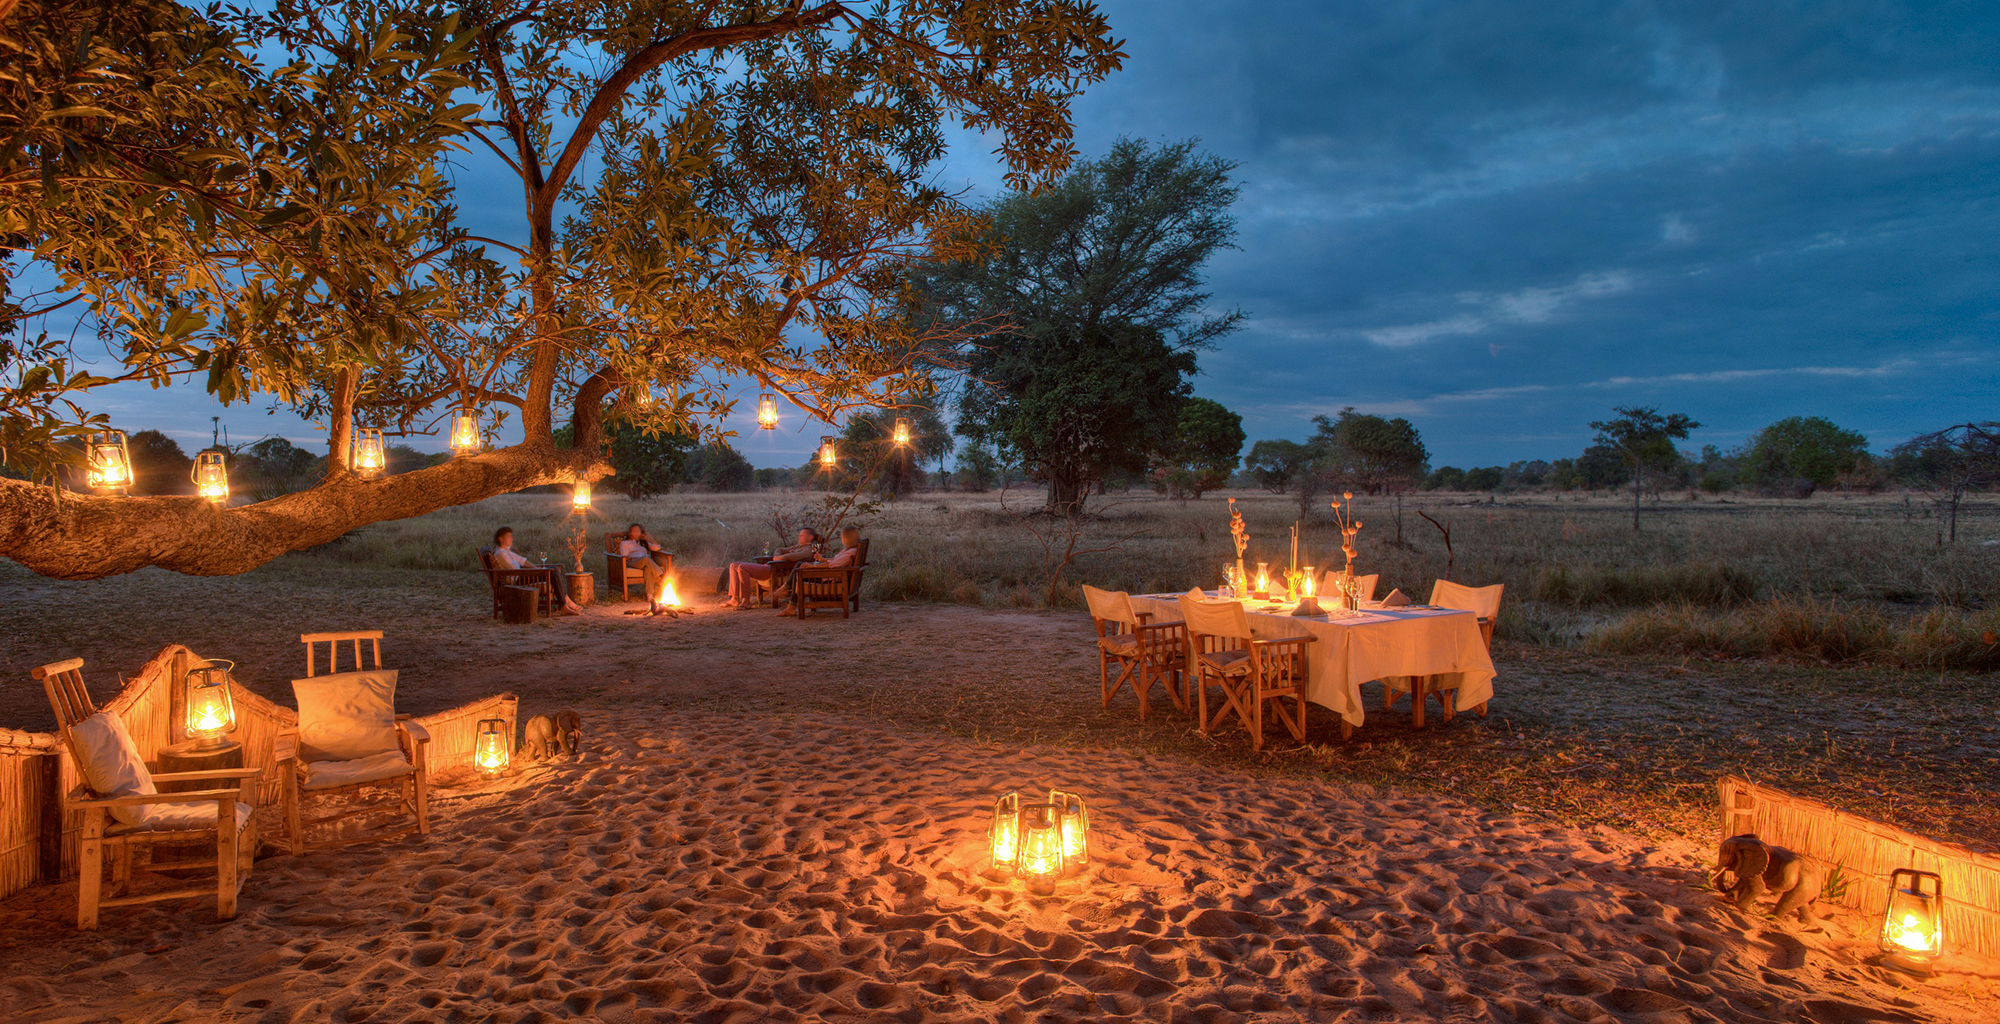 Zambia-Luwi-Camp-Outdoor-Dining